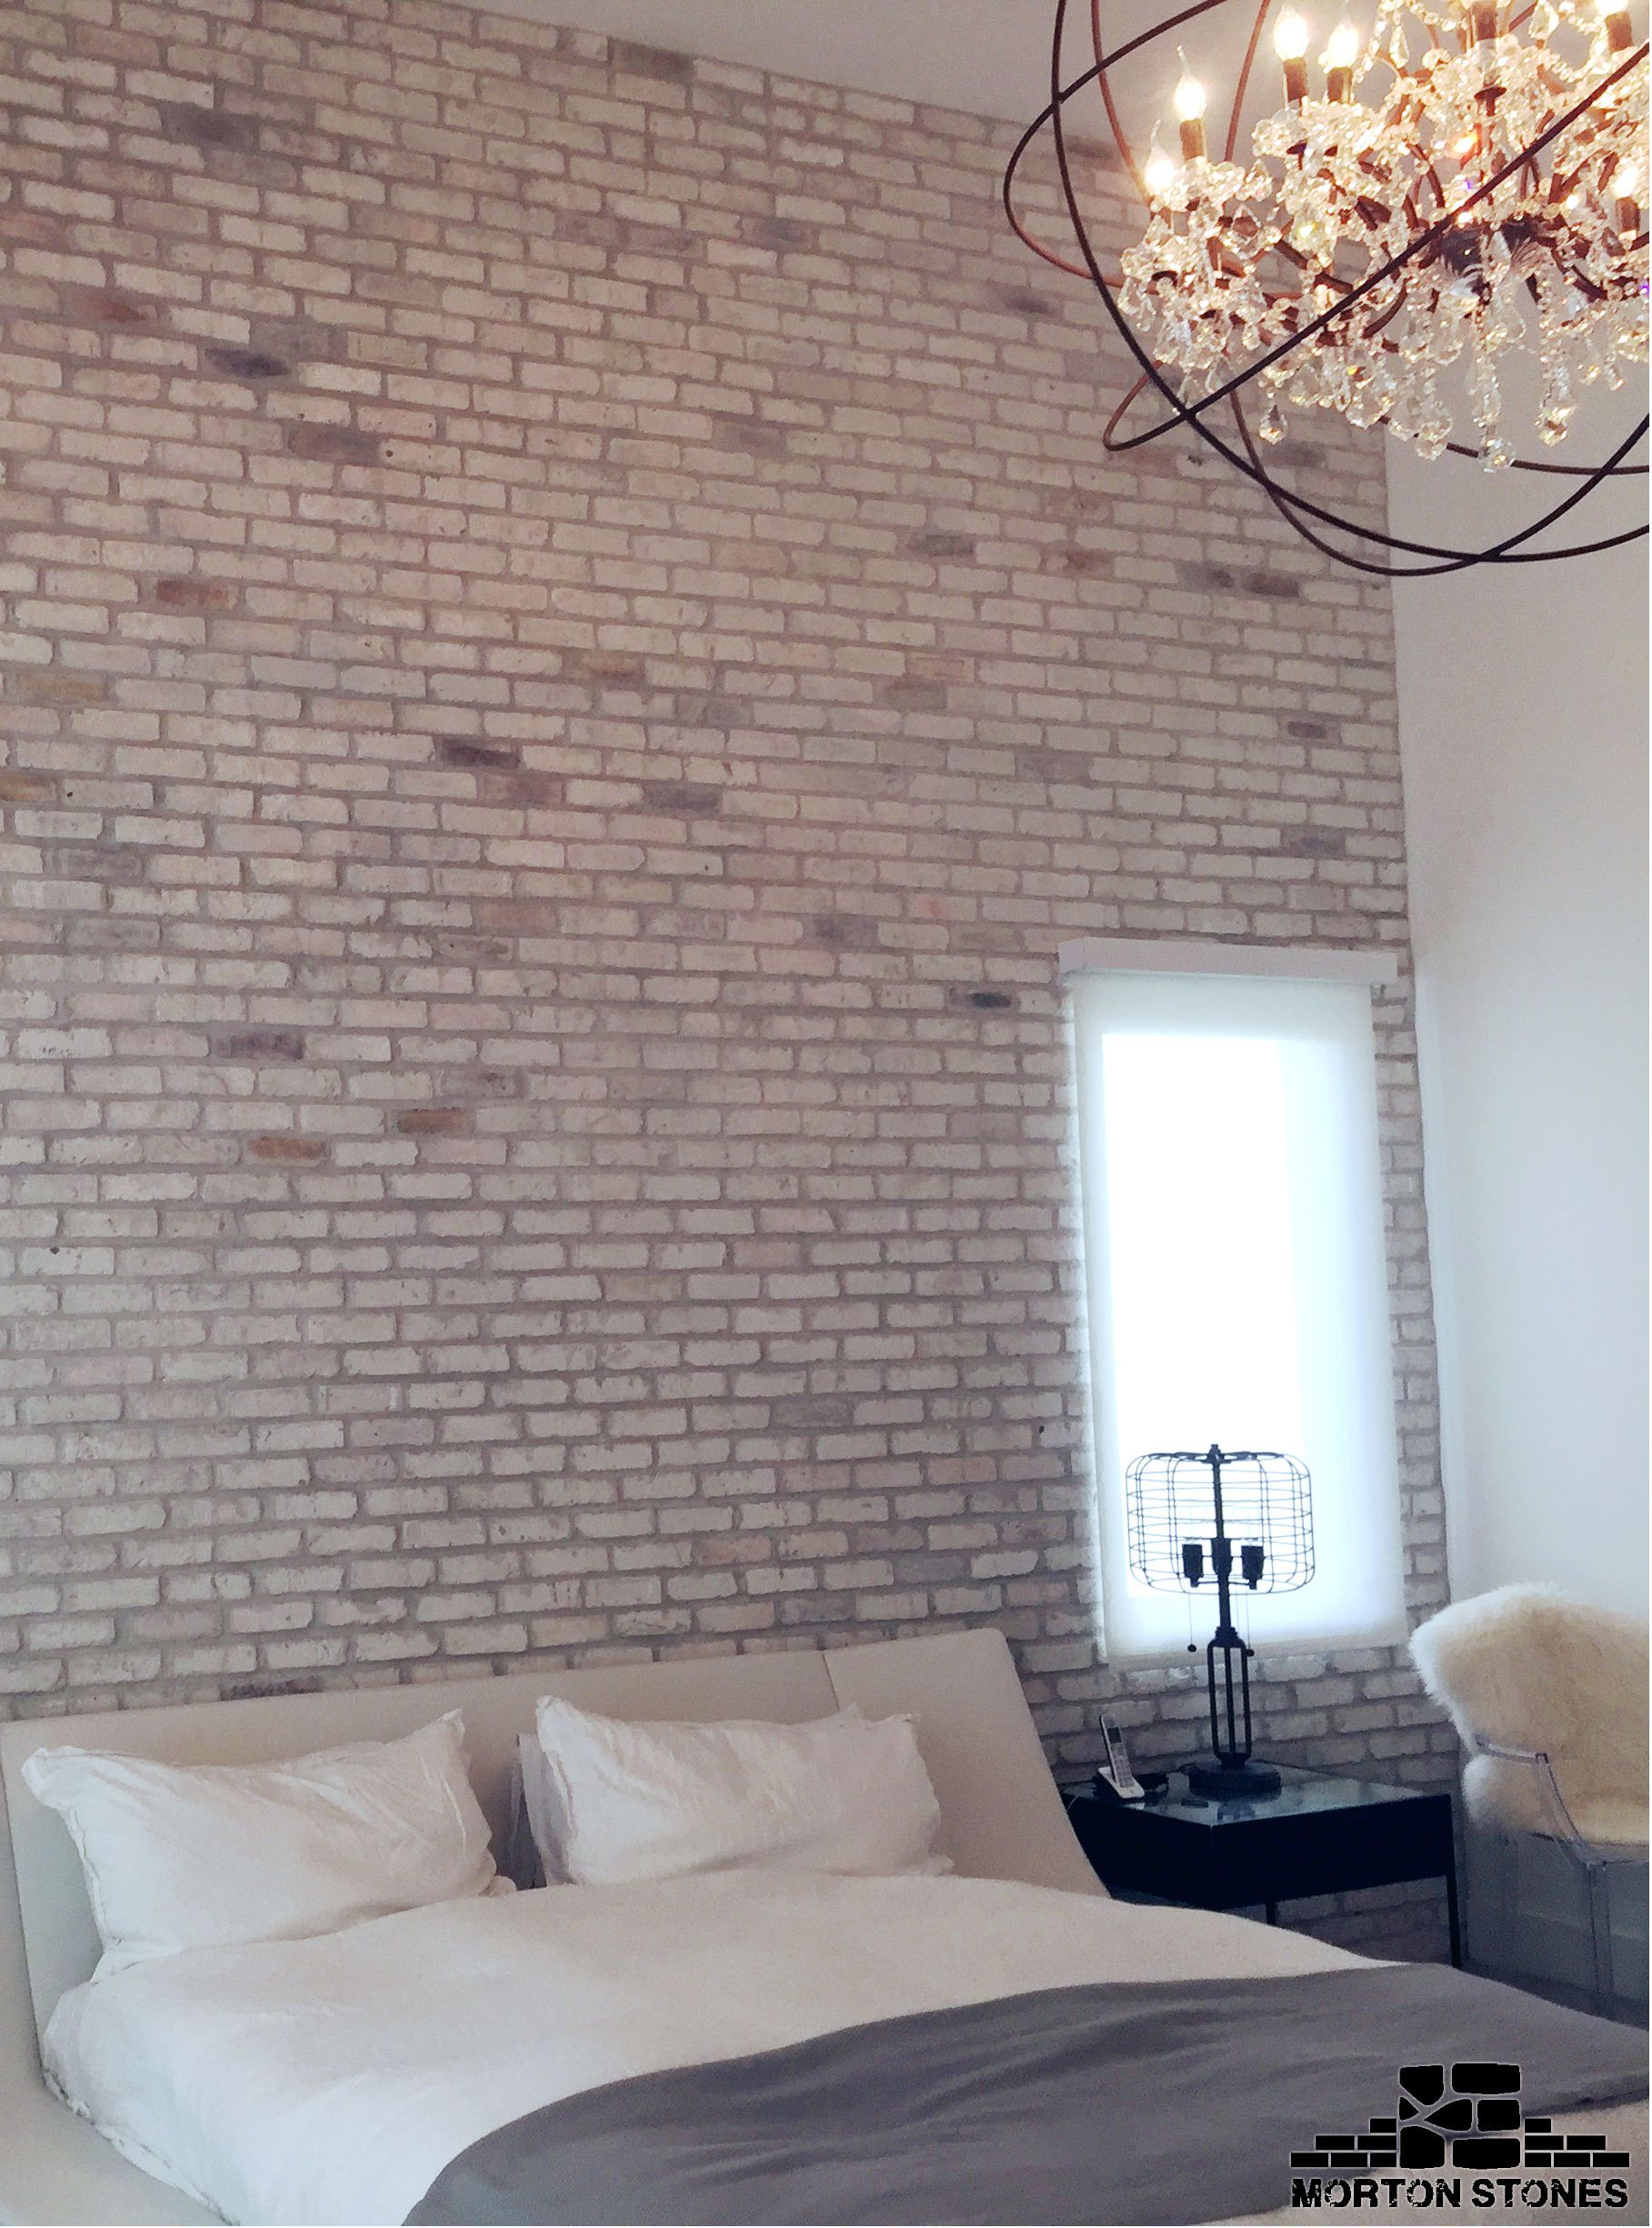 A warm and cozy bedroom design idea mortonstones brick tiles